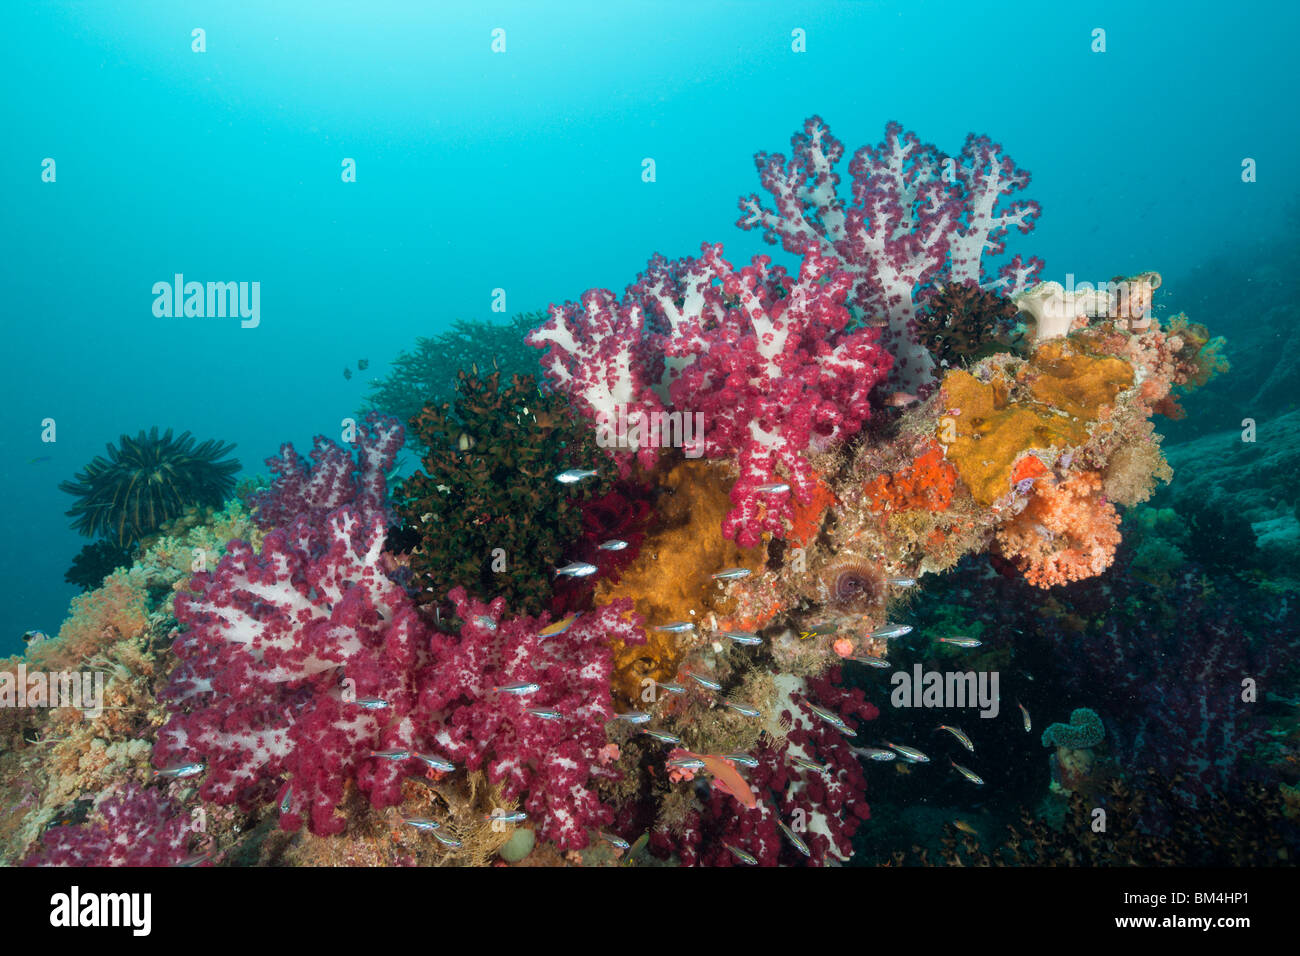 Corales suaves de color rojo en el Coral Reef, Dendronephthya sp., Raja Ampat, Papua Occidental, Indonesia Imagen De Stock